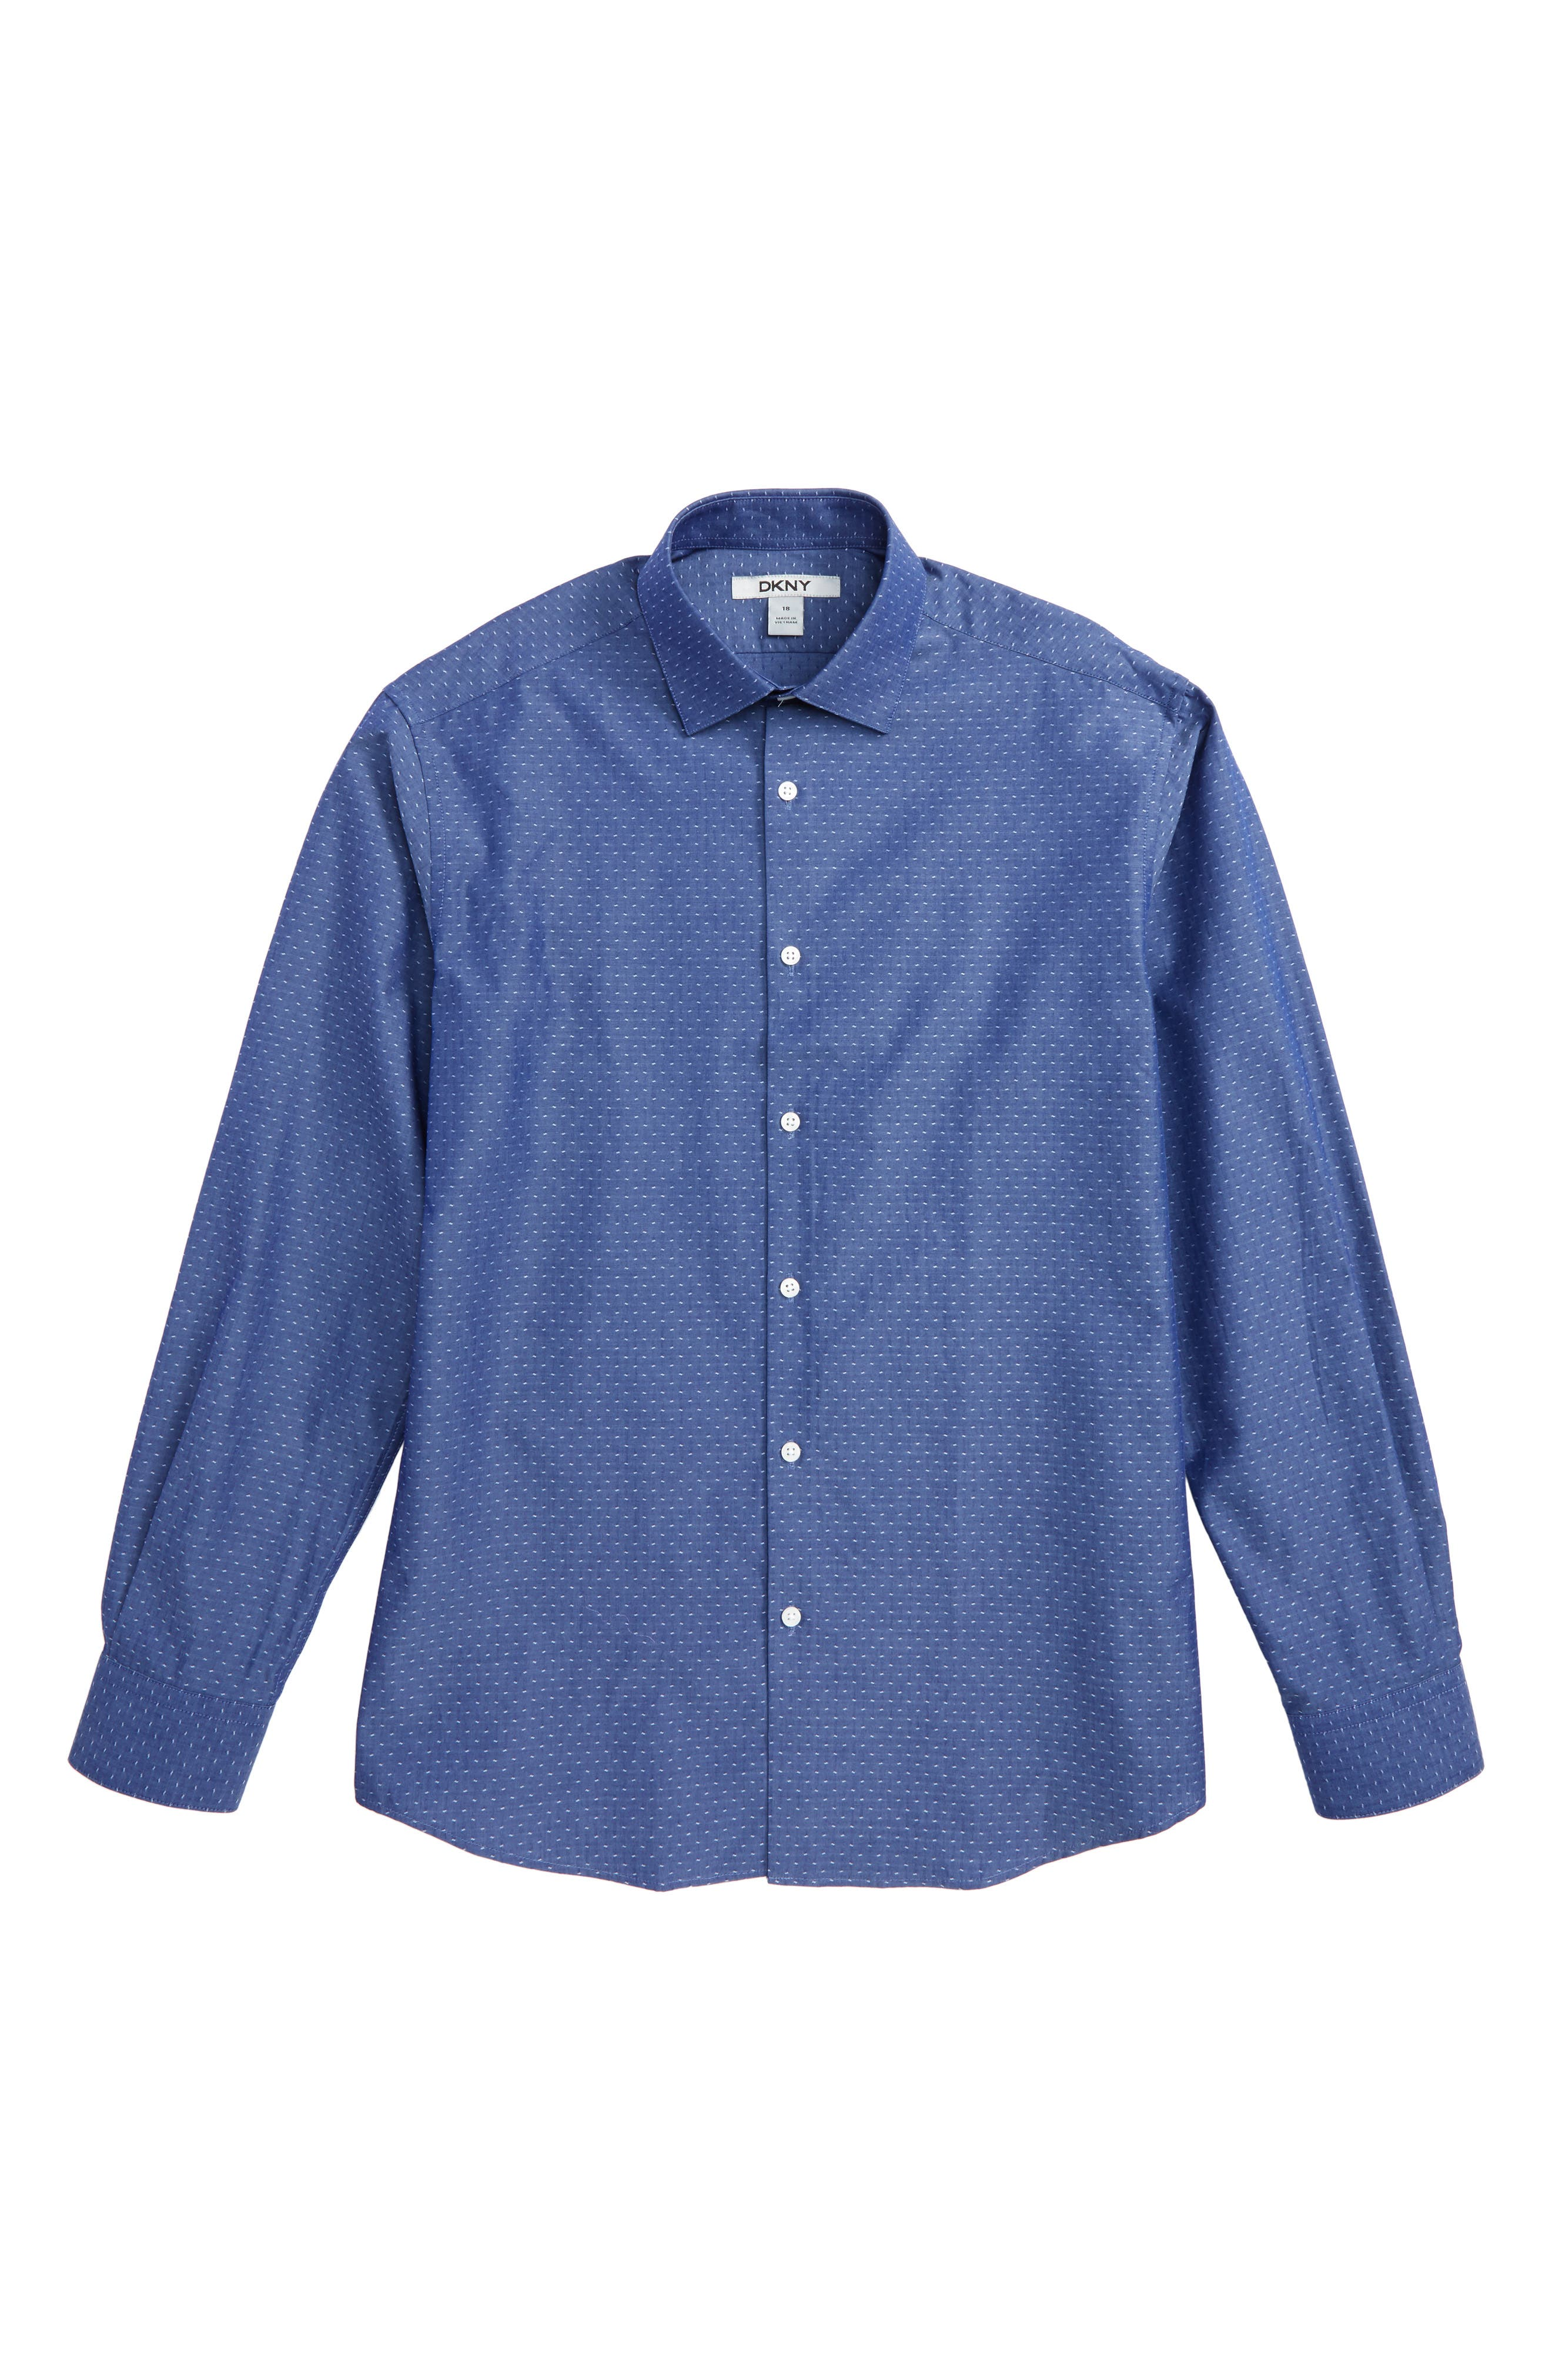 Dobby Dress Shirt,                             Main thumbnail 1, color,                             412